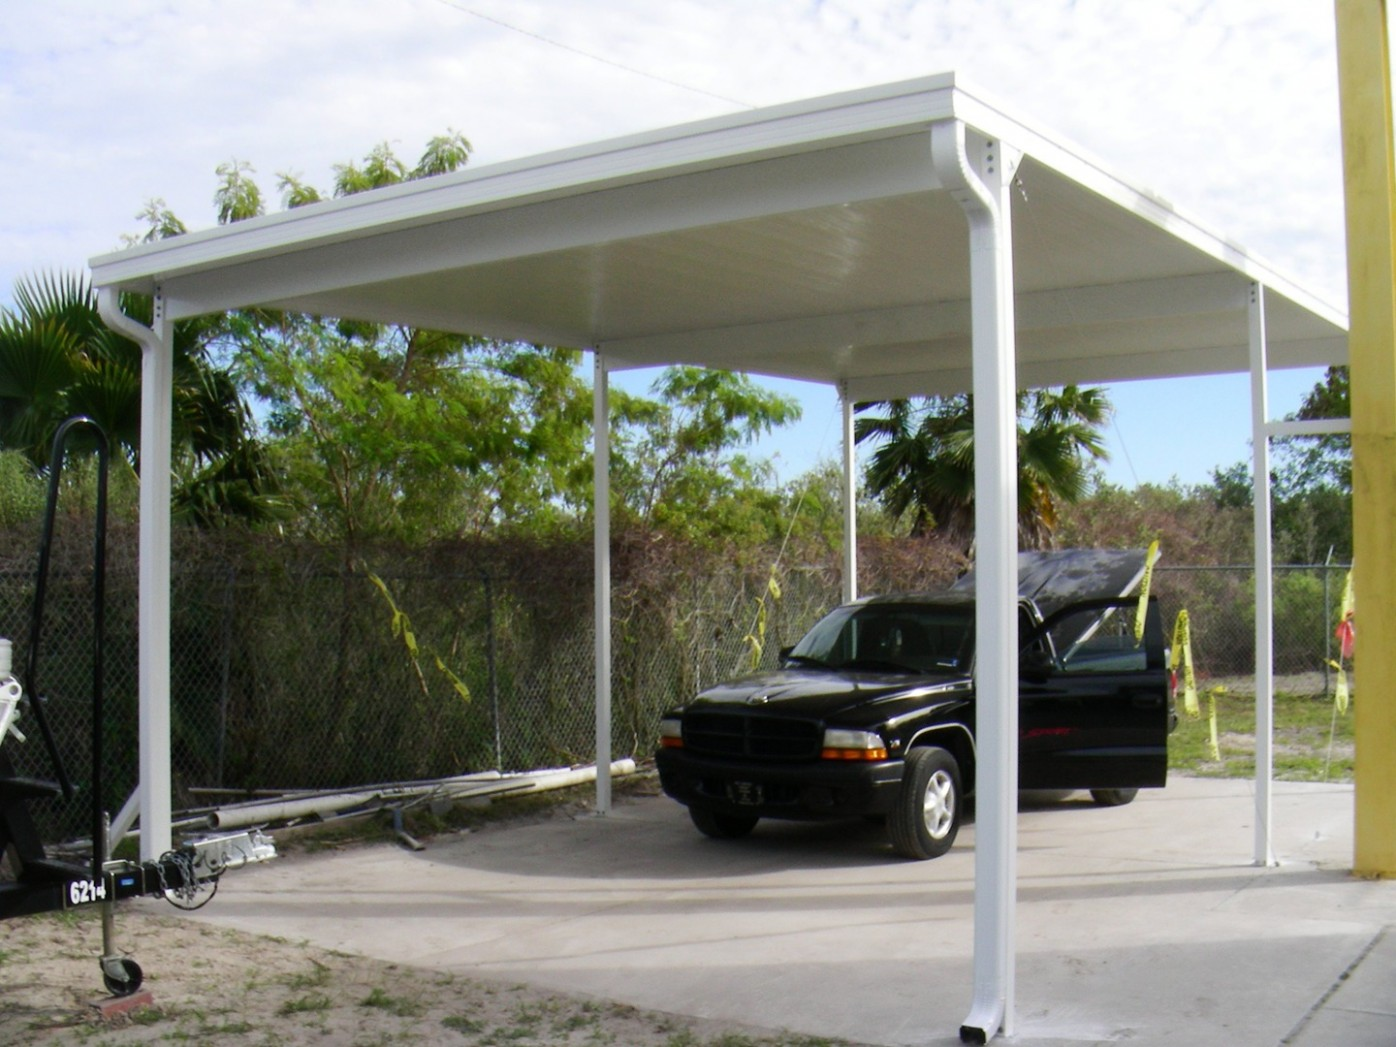 Ten Questions To Ask At Discount Carports Garages | discount carports garages